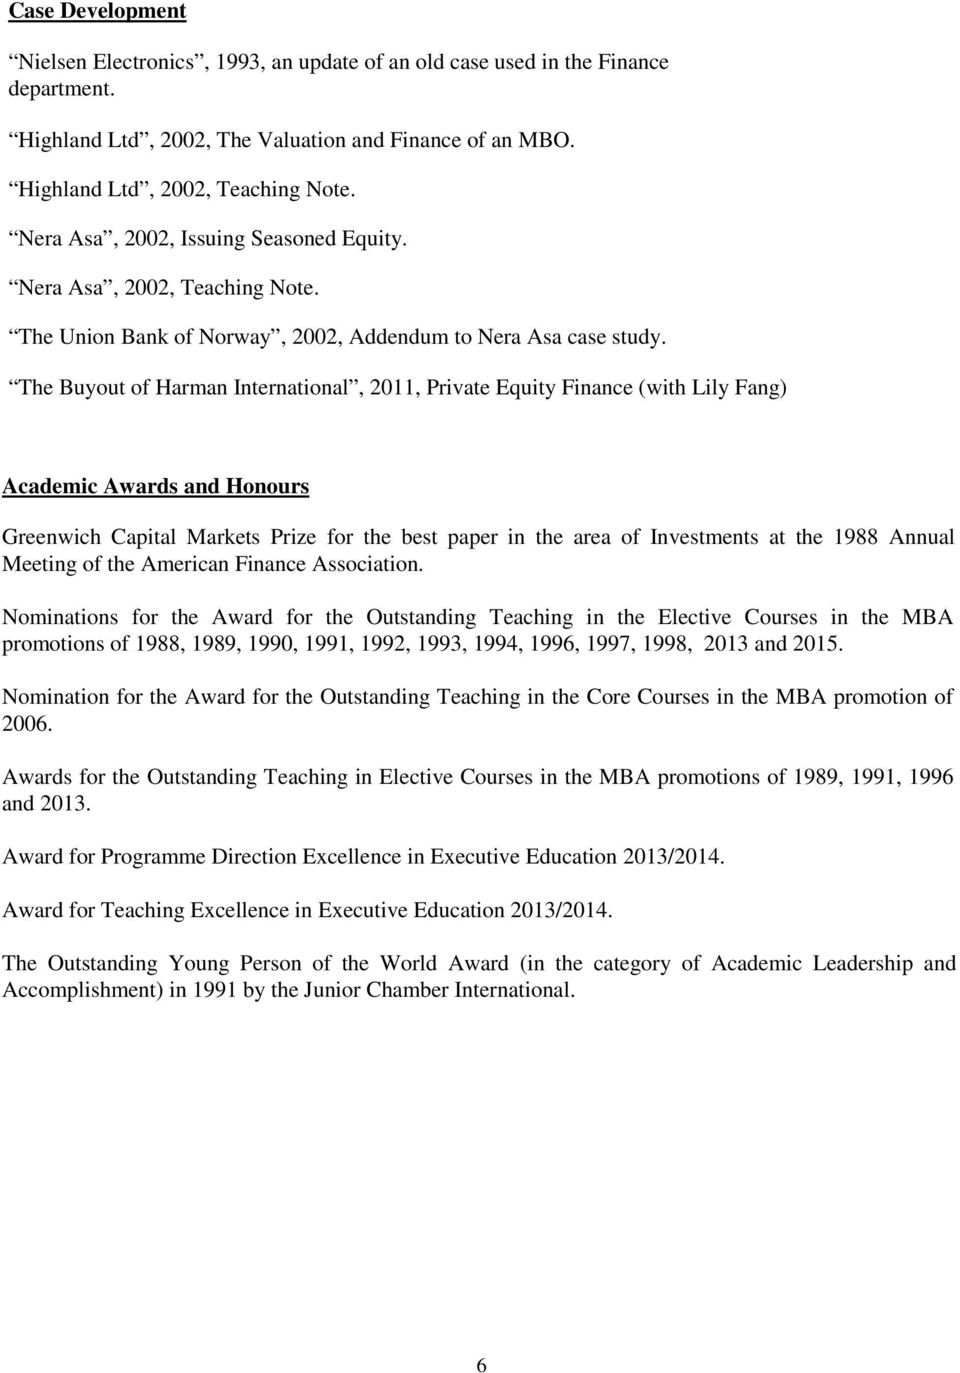 The Buyout of Harman International, 2011, Private Equity Finance (with Lily Fang) Academic Awards and Honours Greenwich Capital Markets Prize for the best paper in the area of Investments at the 1988